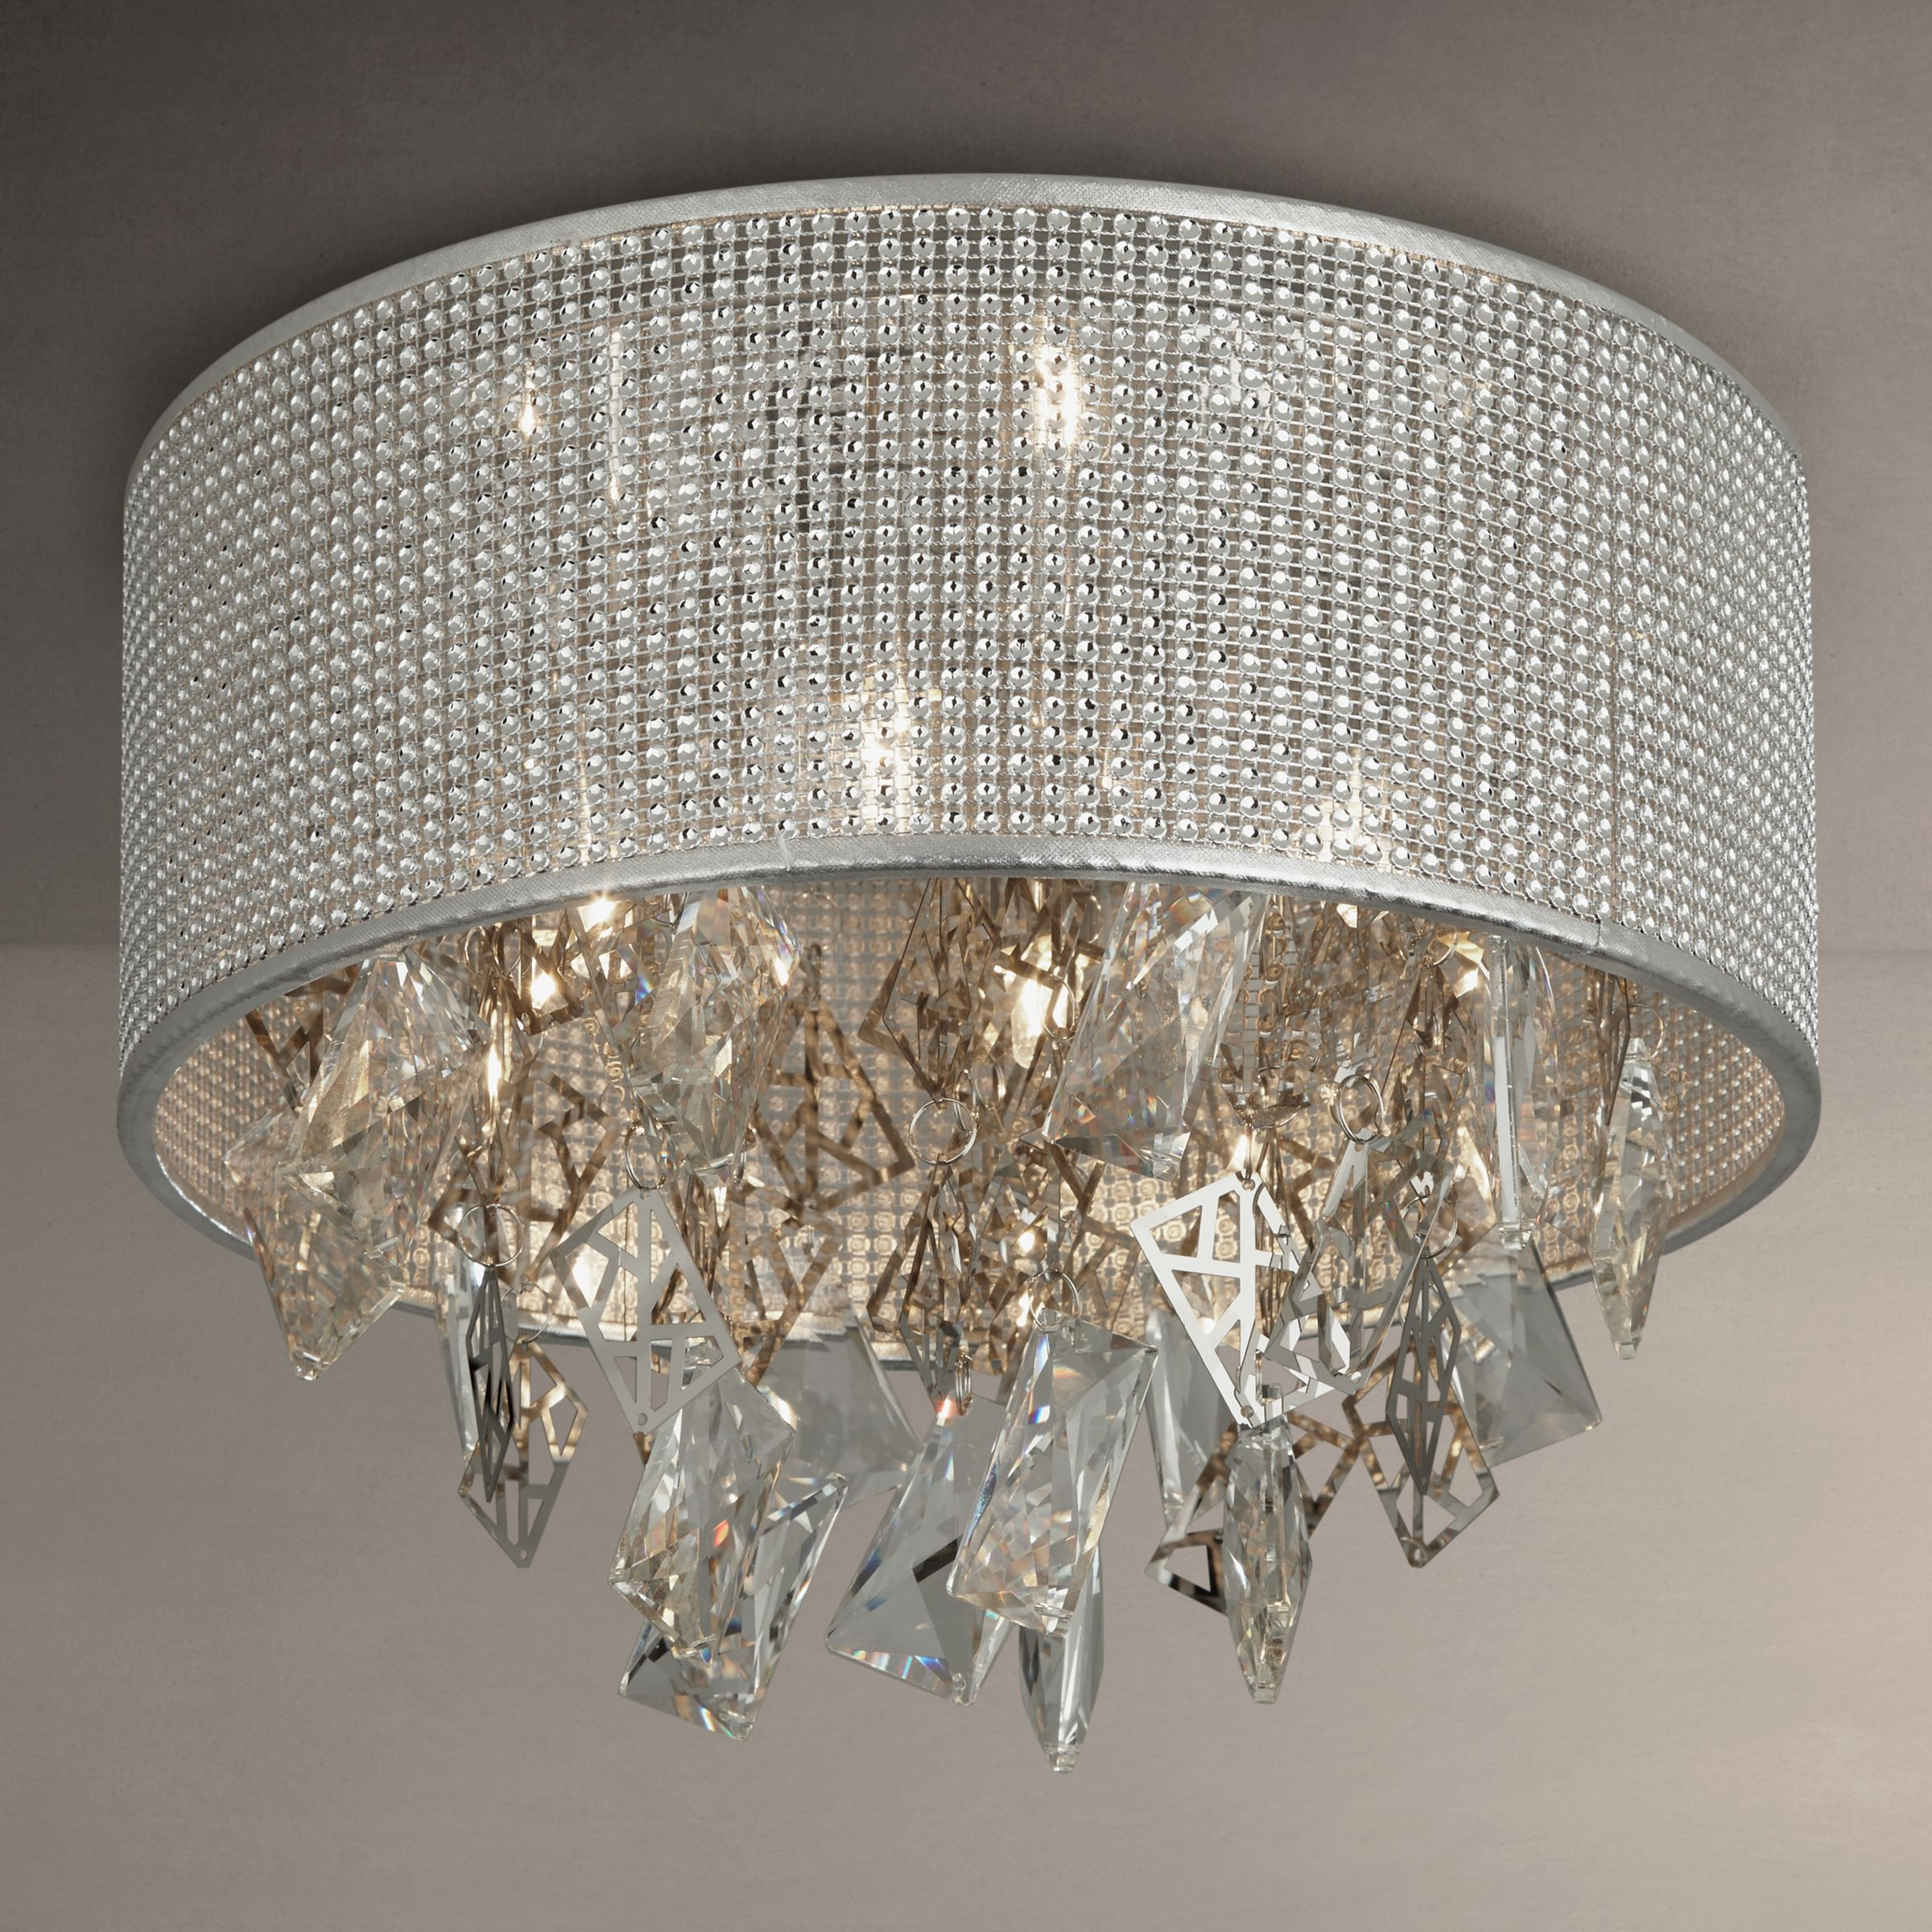 Buy John Lewis Tiffany Semi Flush Ceiling Light Silver John Lewis